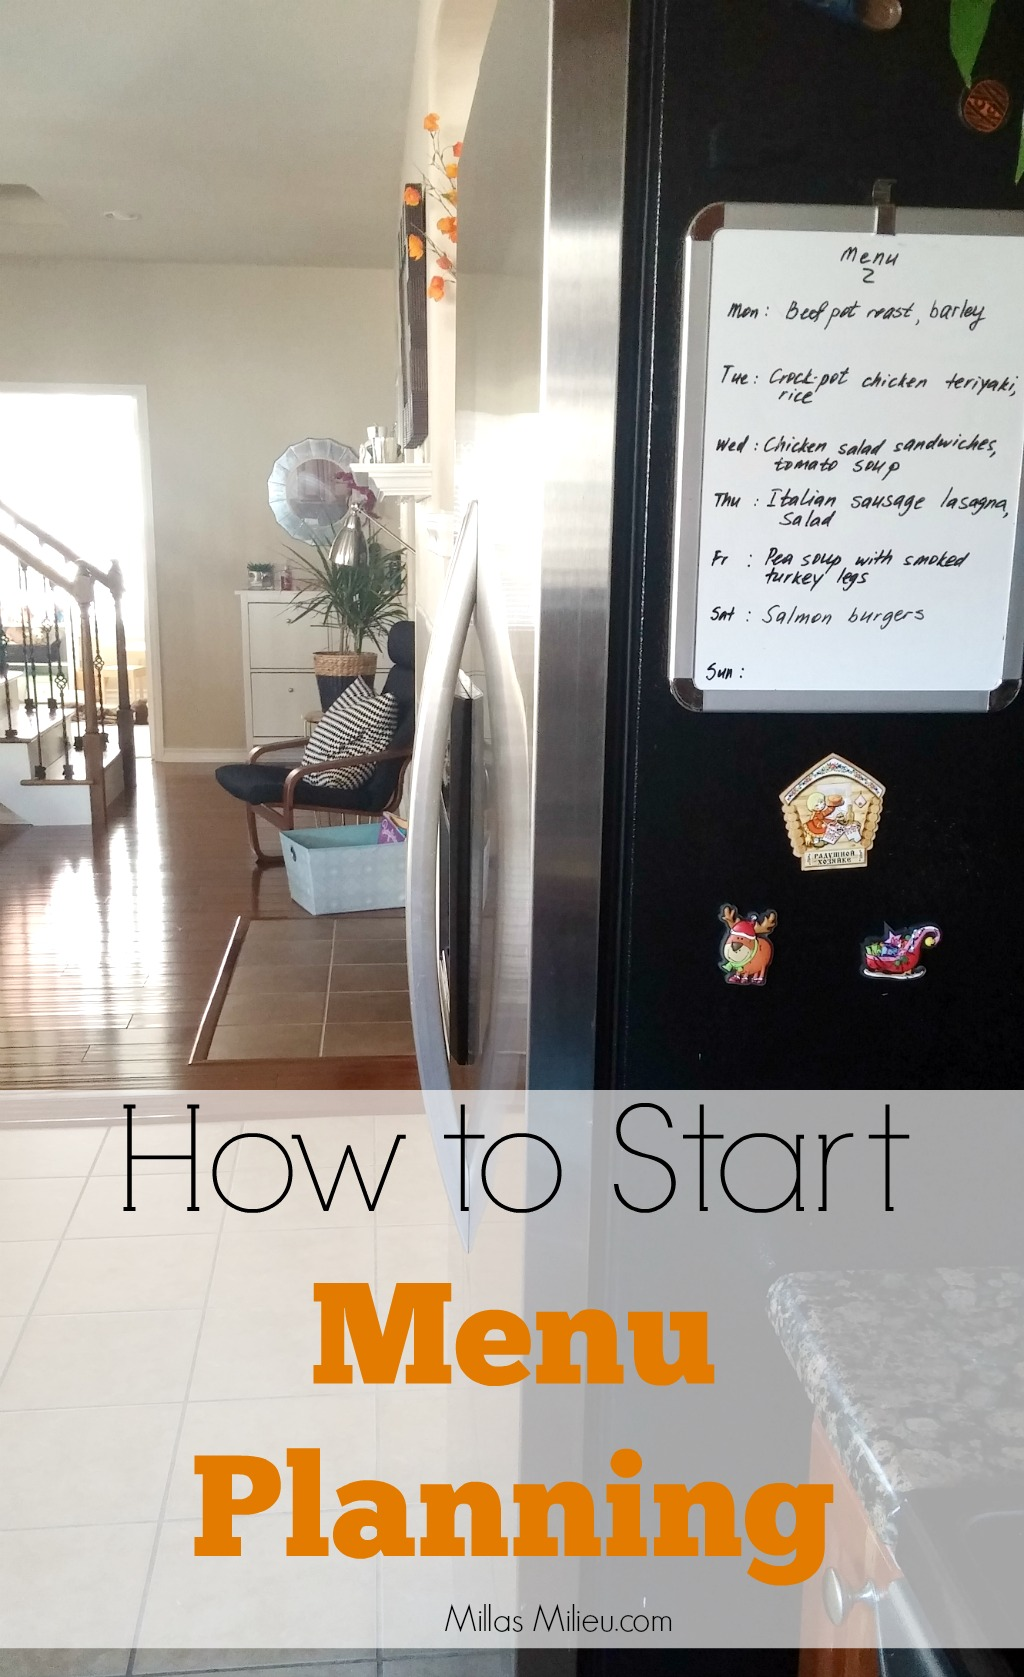 How to start menu planning